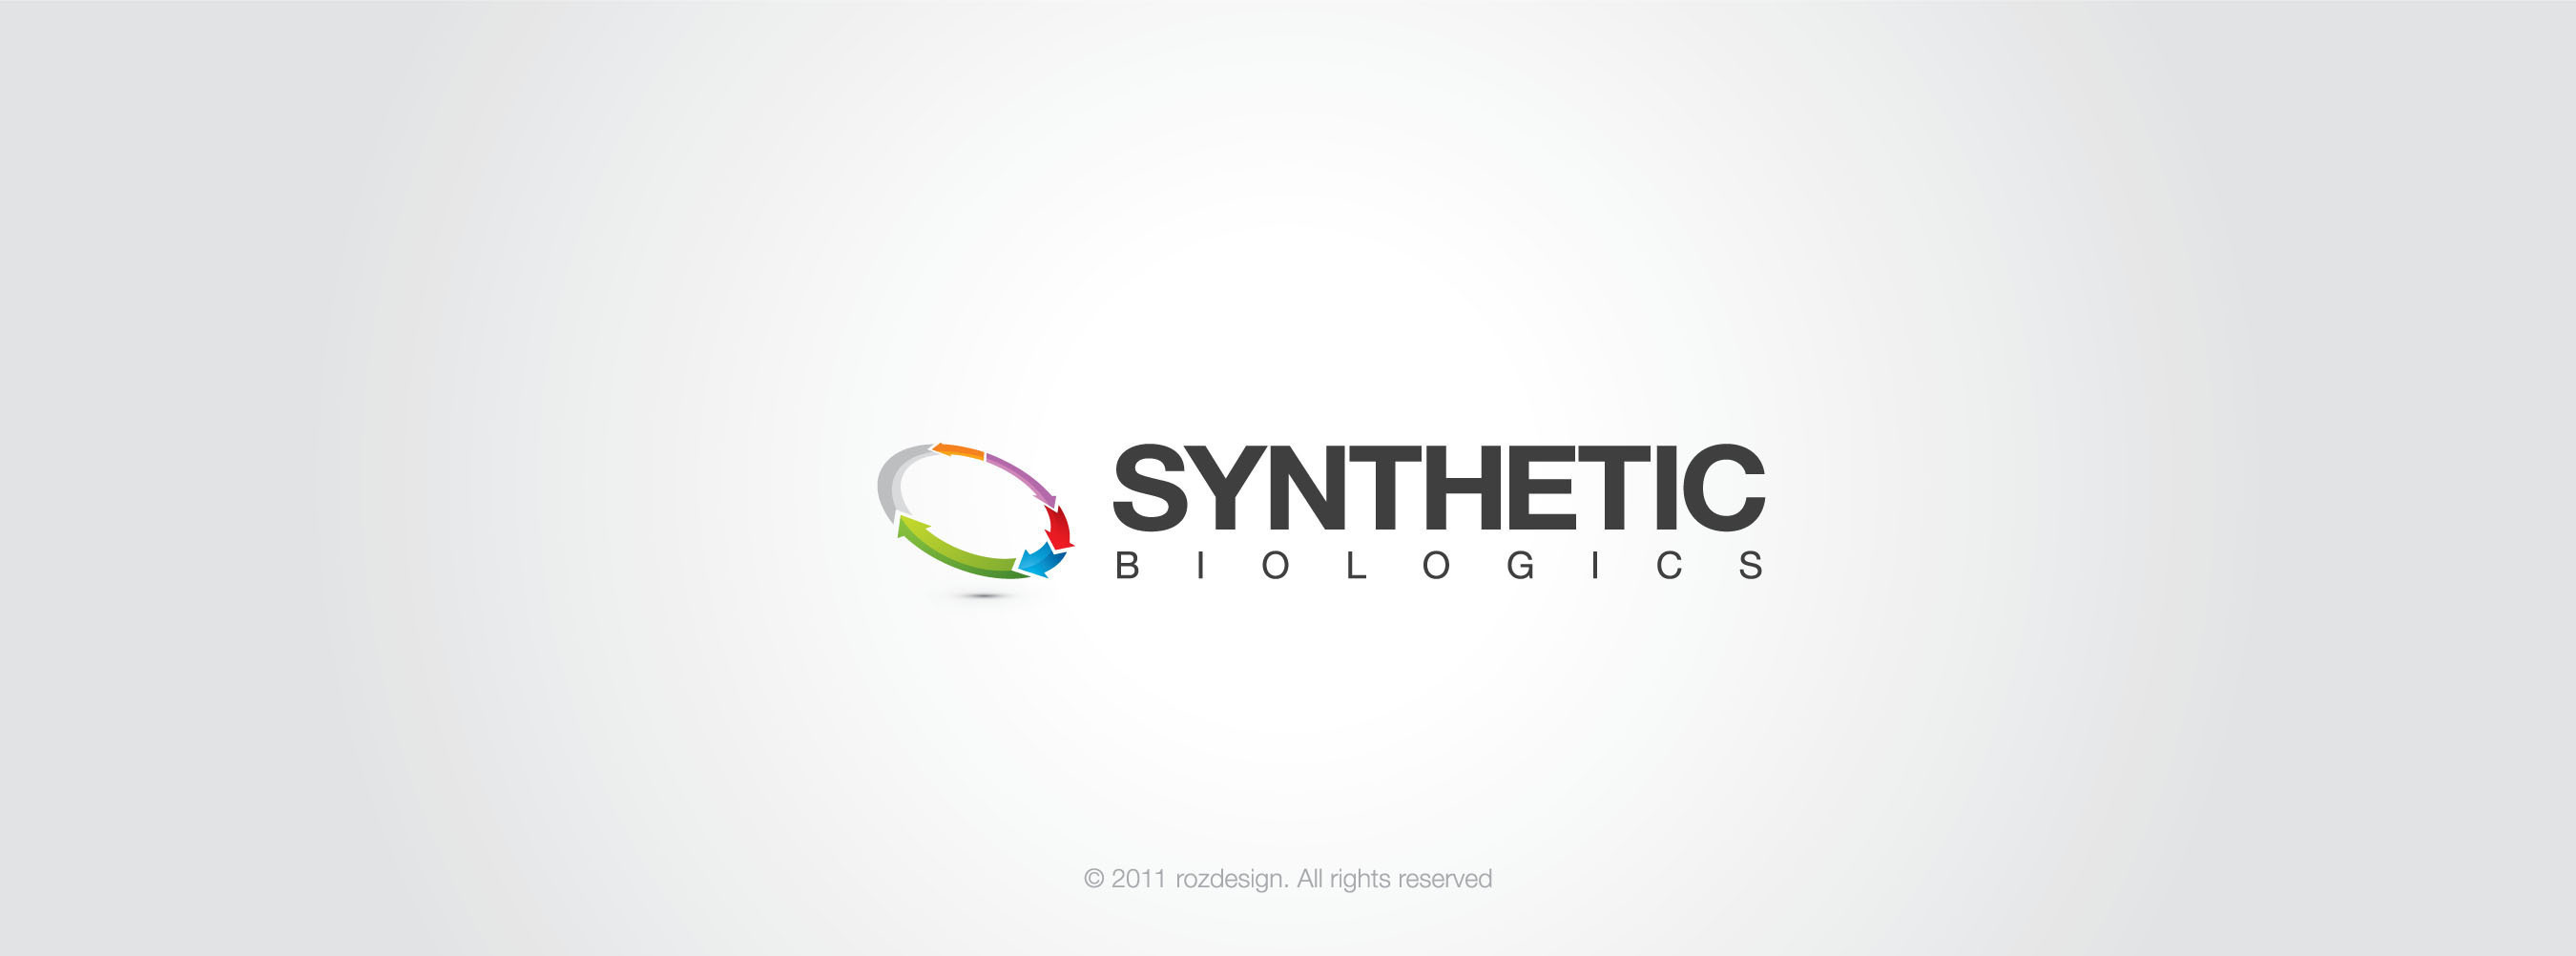 Synthetic Biologics, Inc. Logo.